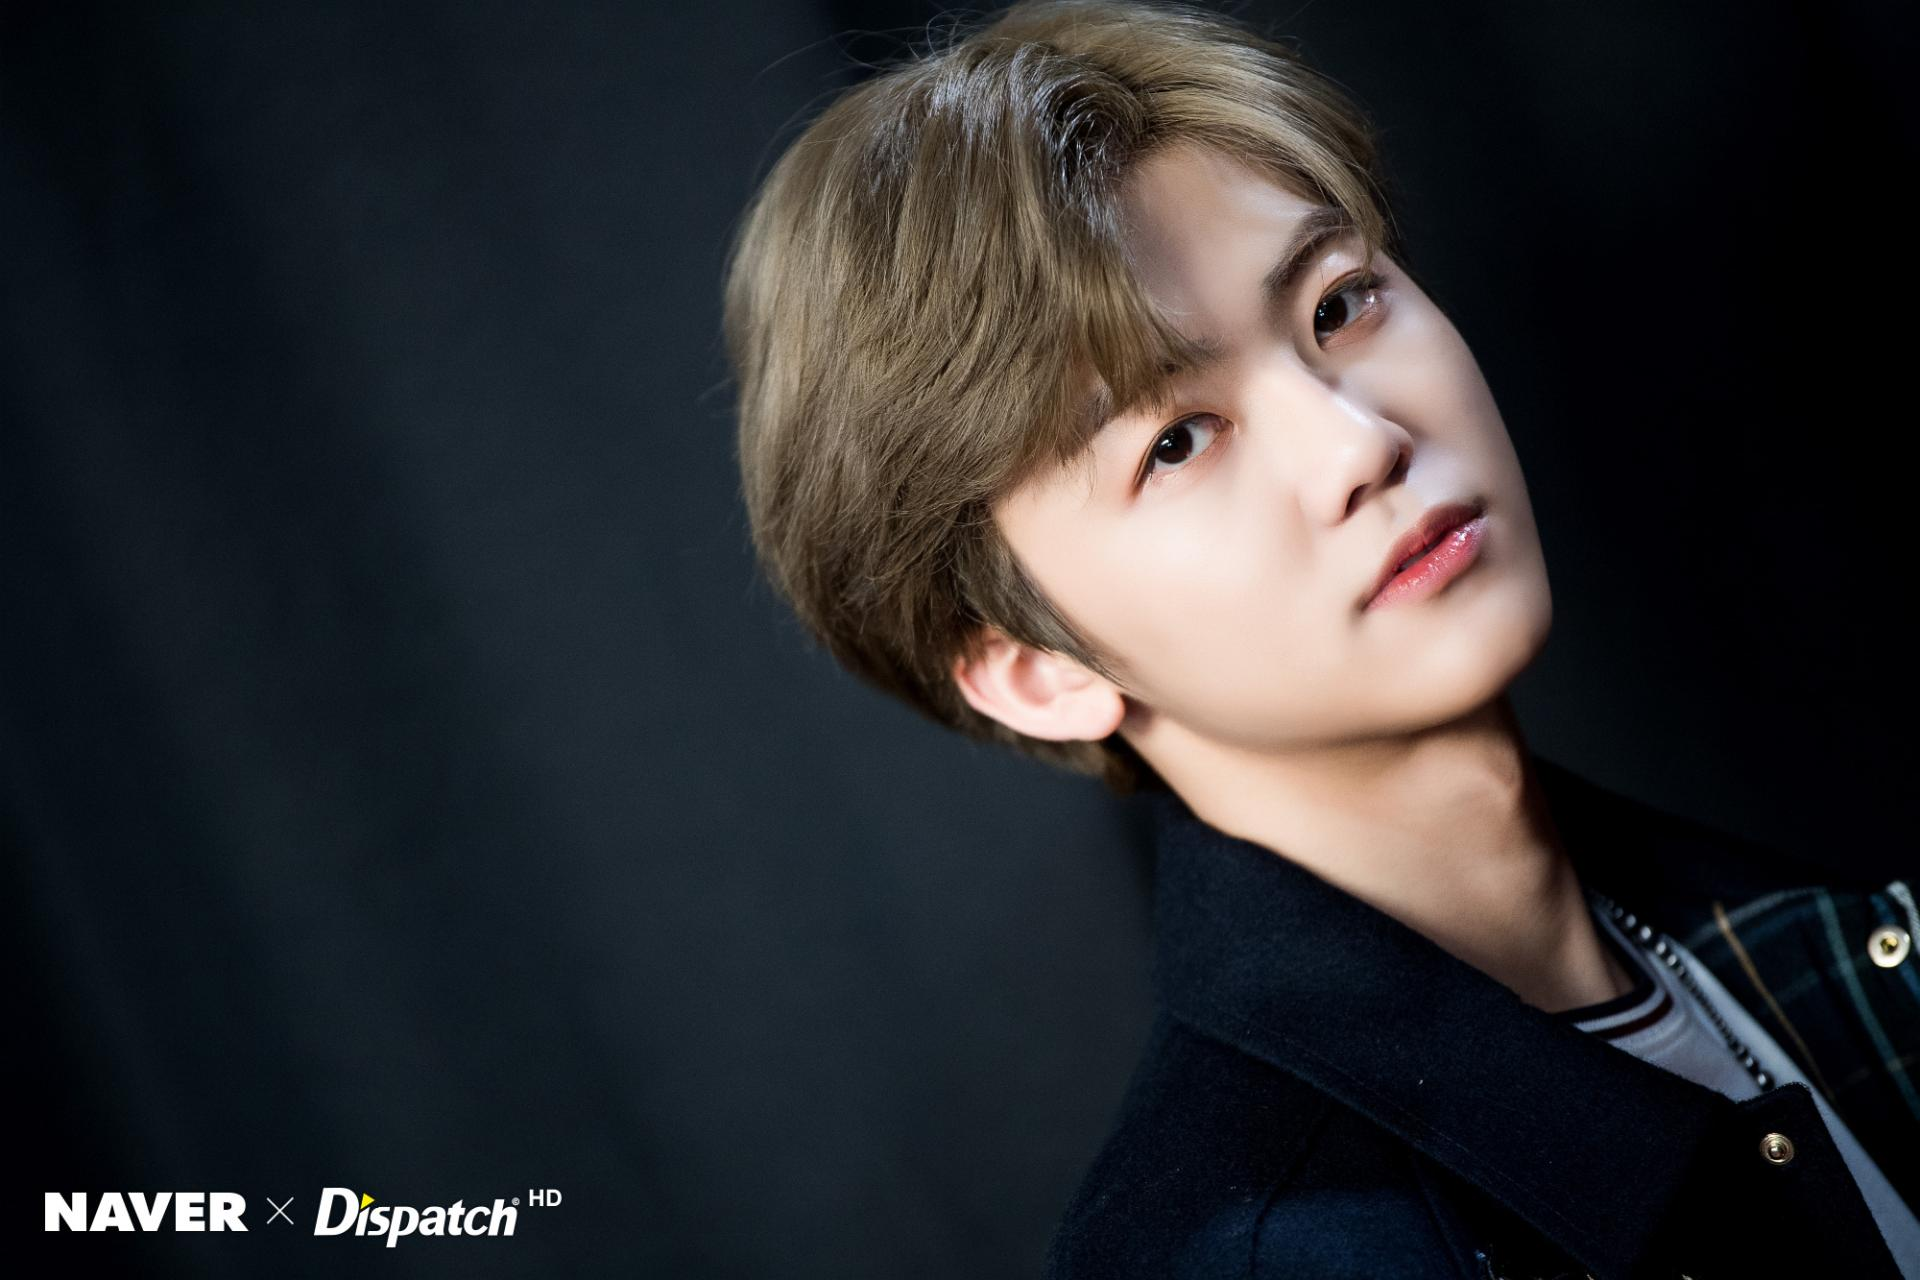 NCT U images Jaemin NCT Dream HD wallpaper and background photos 1920x1280